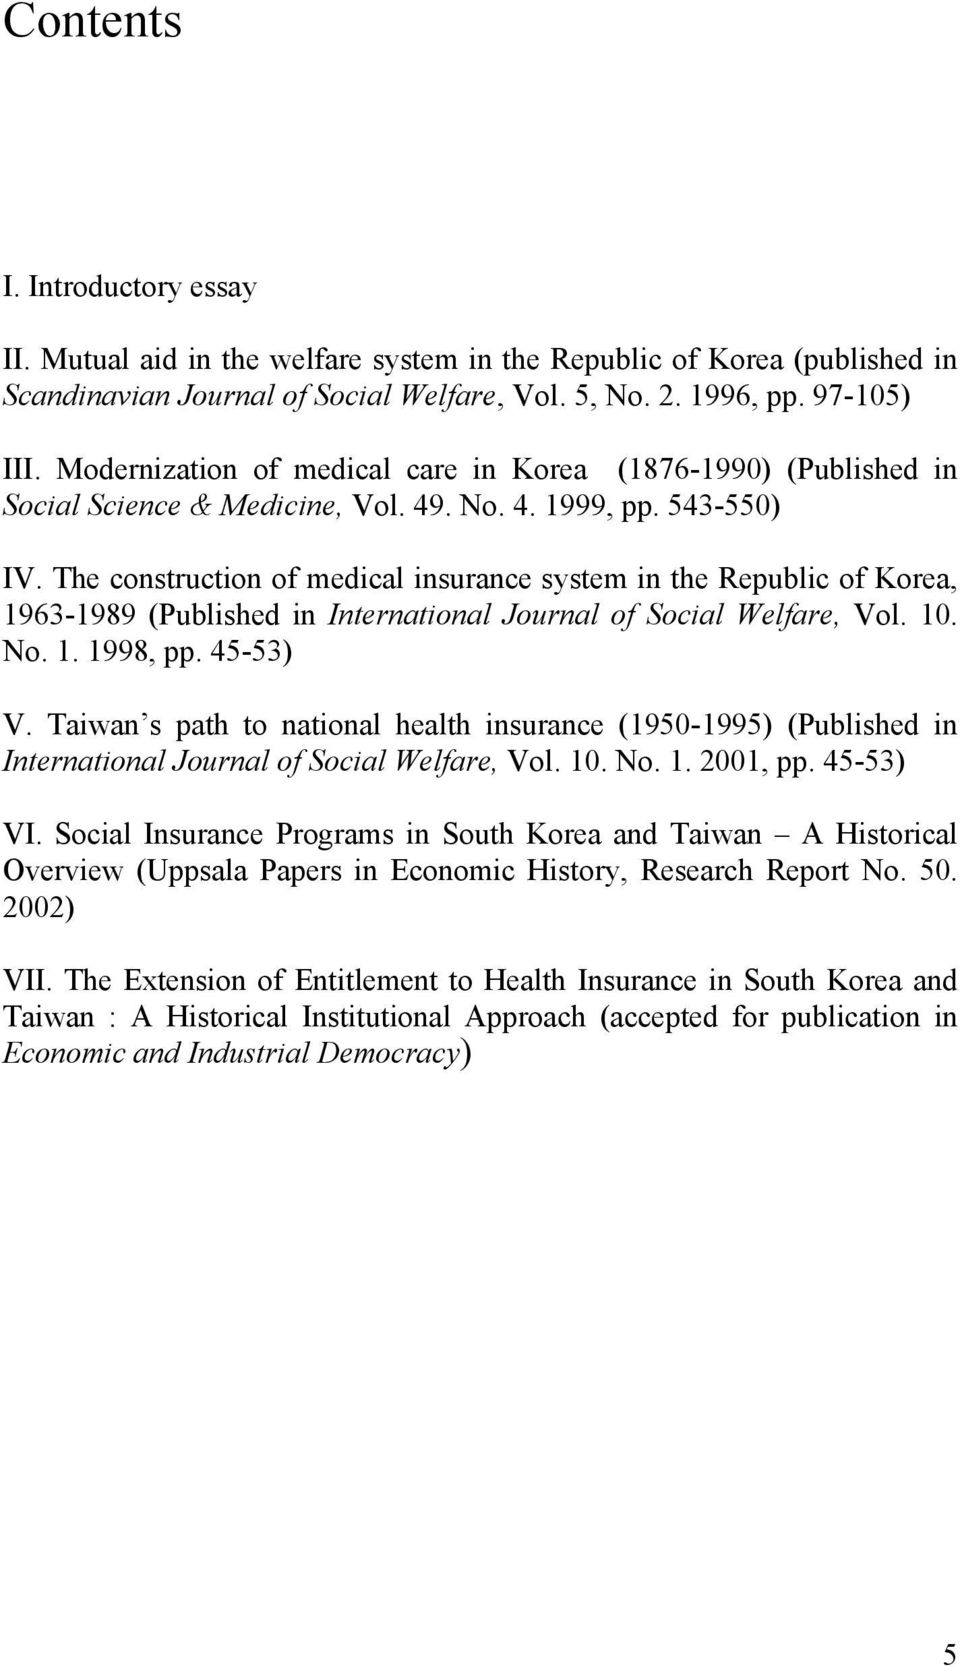 The construction of medical insurance system in the Republic of Korea, 1963-1989 (Published in International Journal of Social Welfare, Vol. 10. No. 1. 1998, pp. 45-53) V.